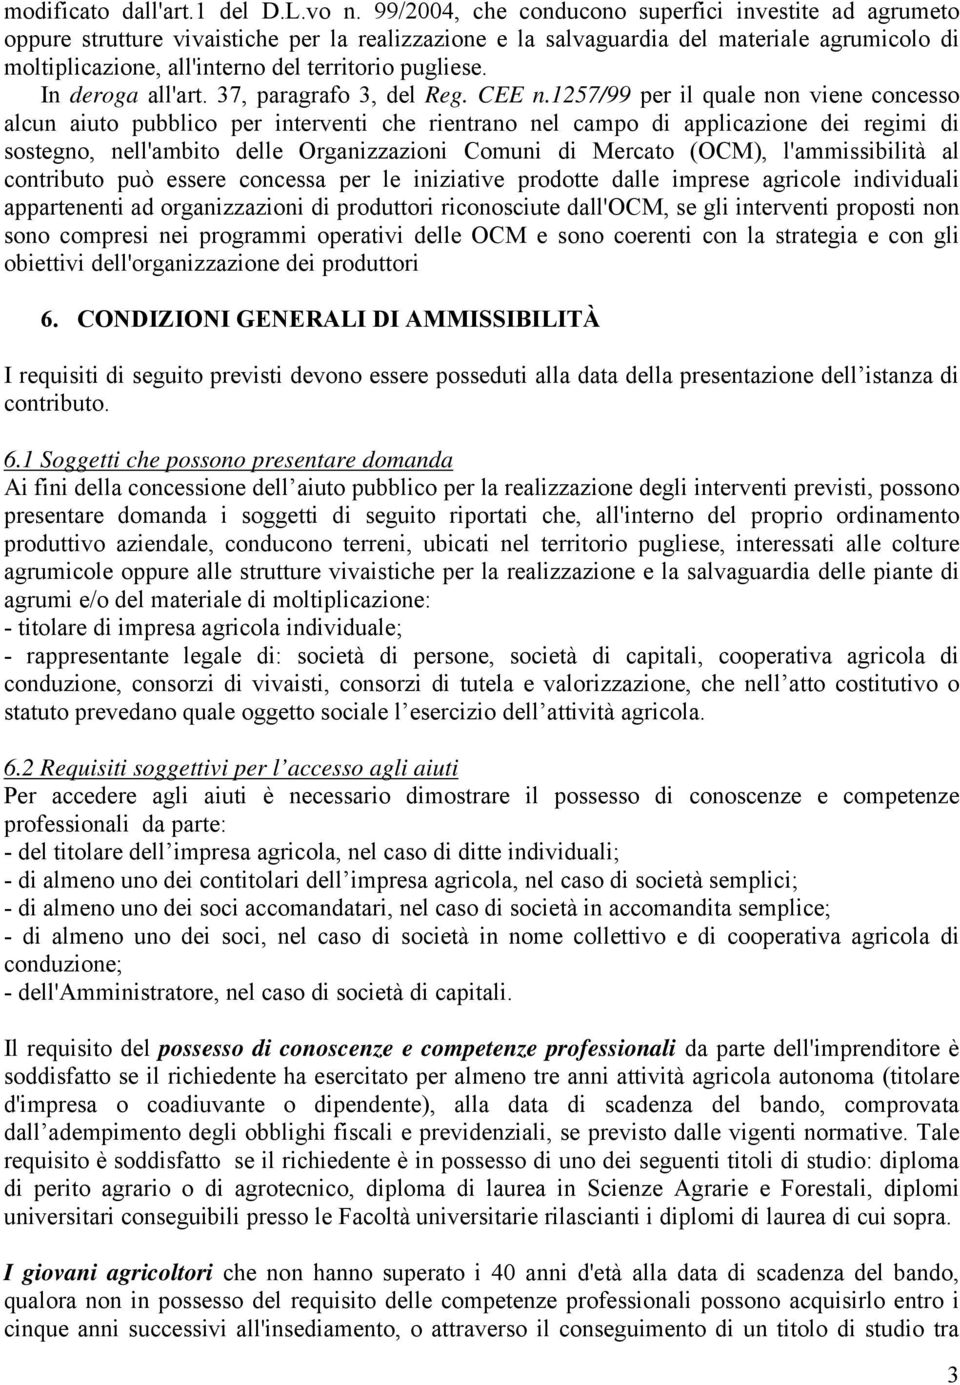 pugliese. In deroga all'art. 37, paragrafo 3, del Reg. CEE n.